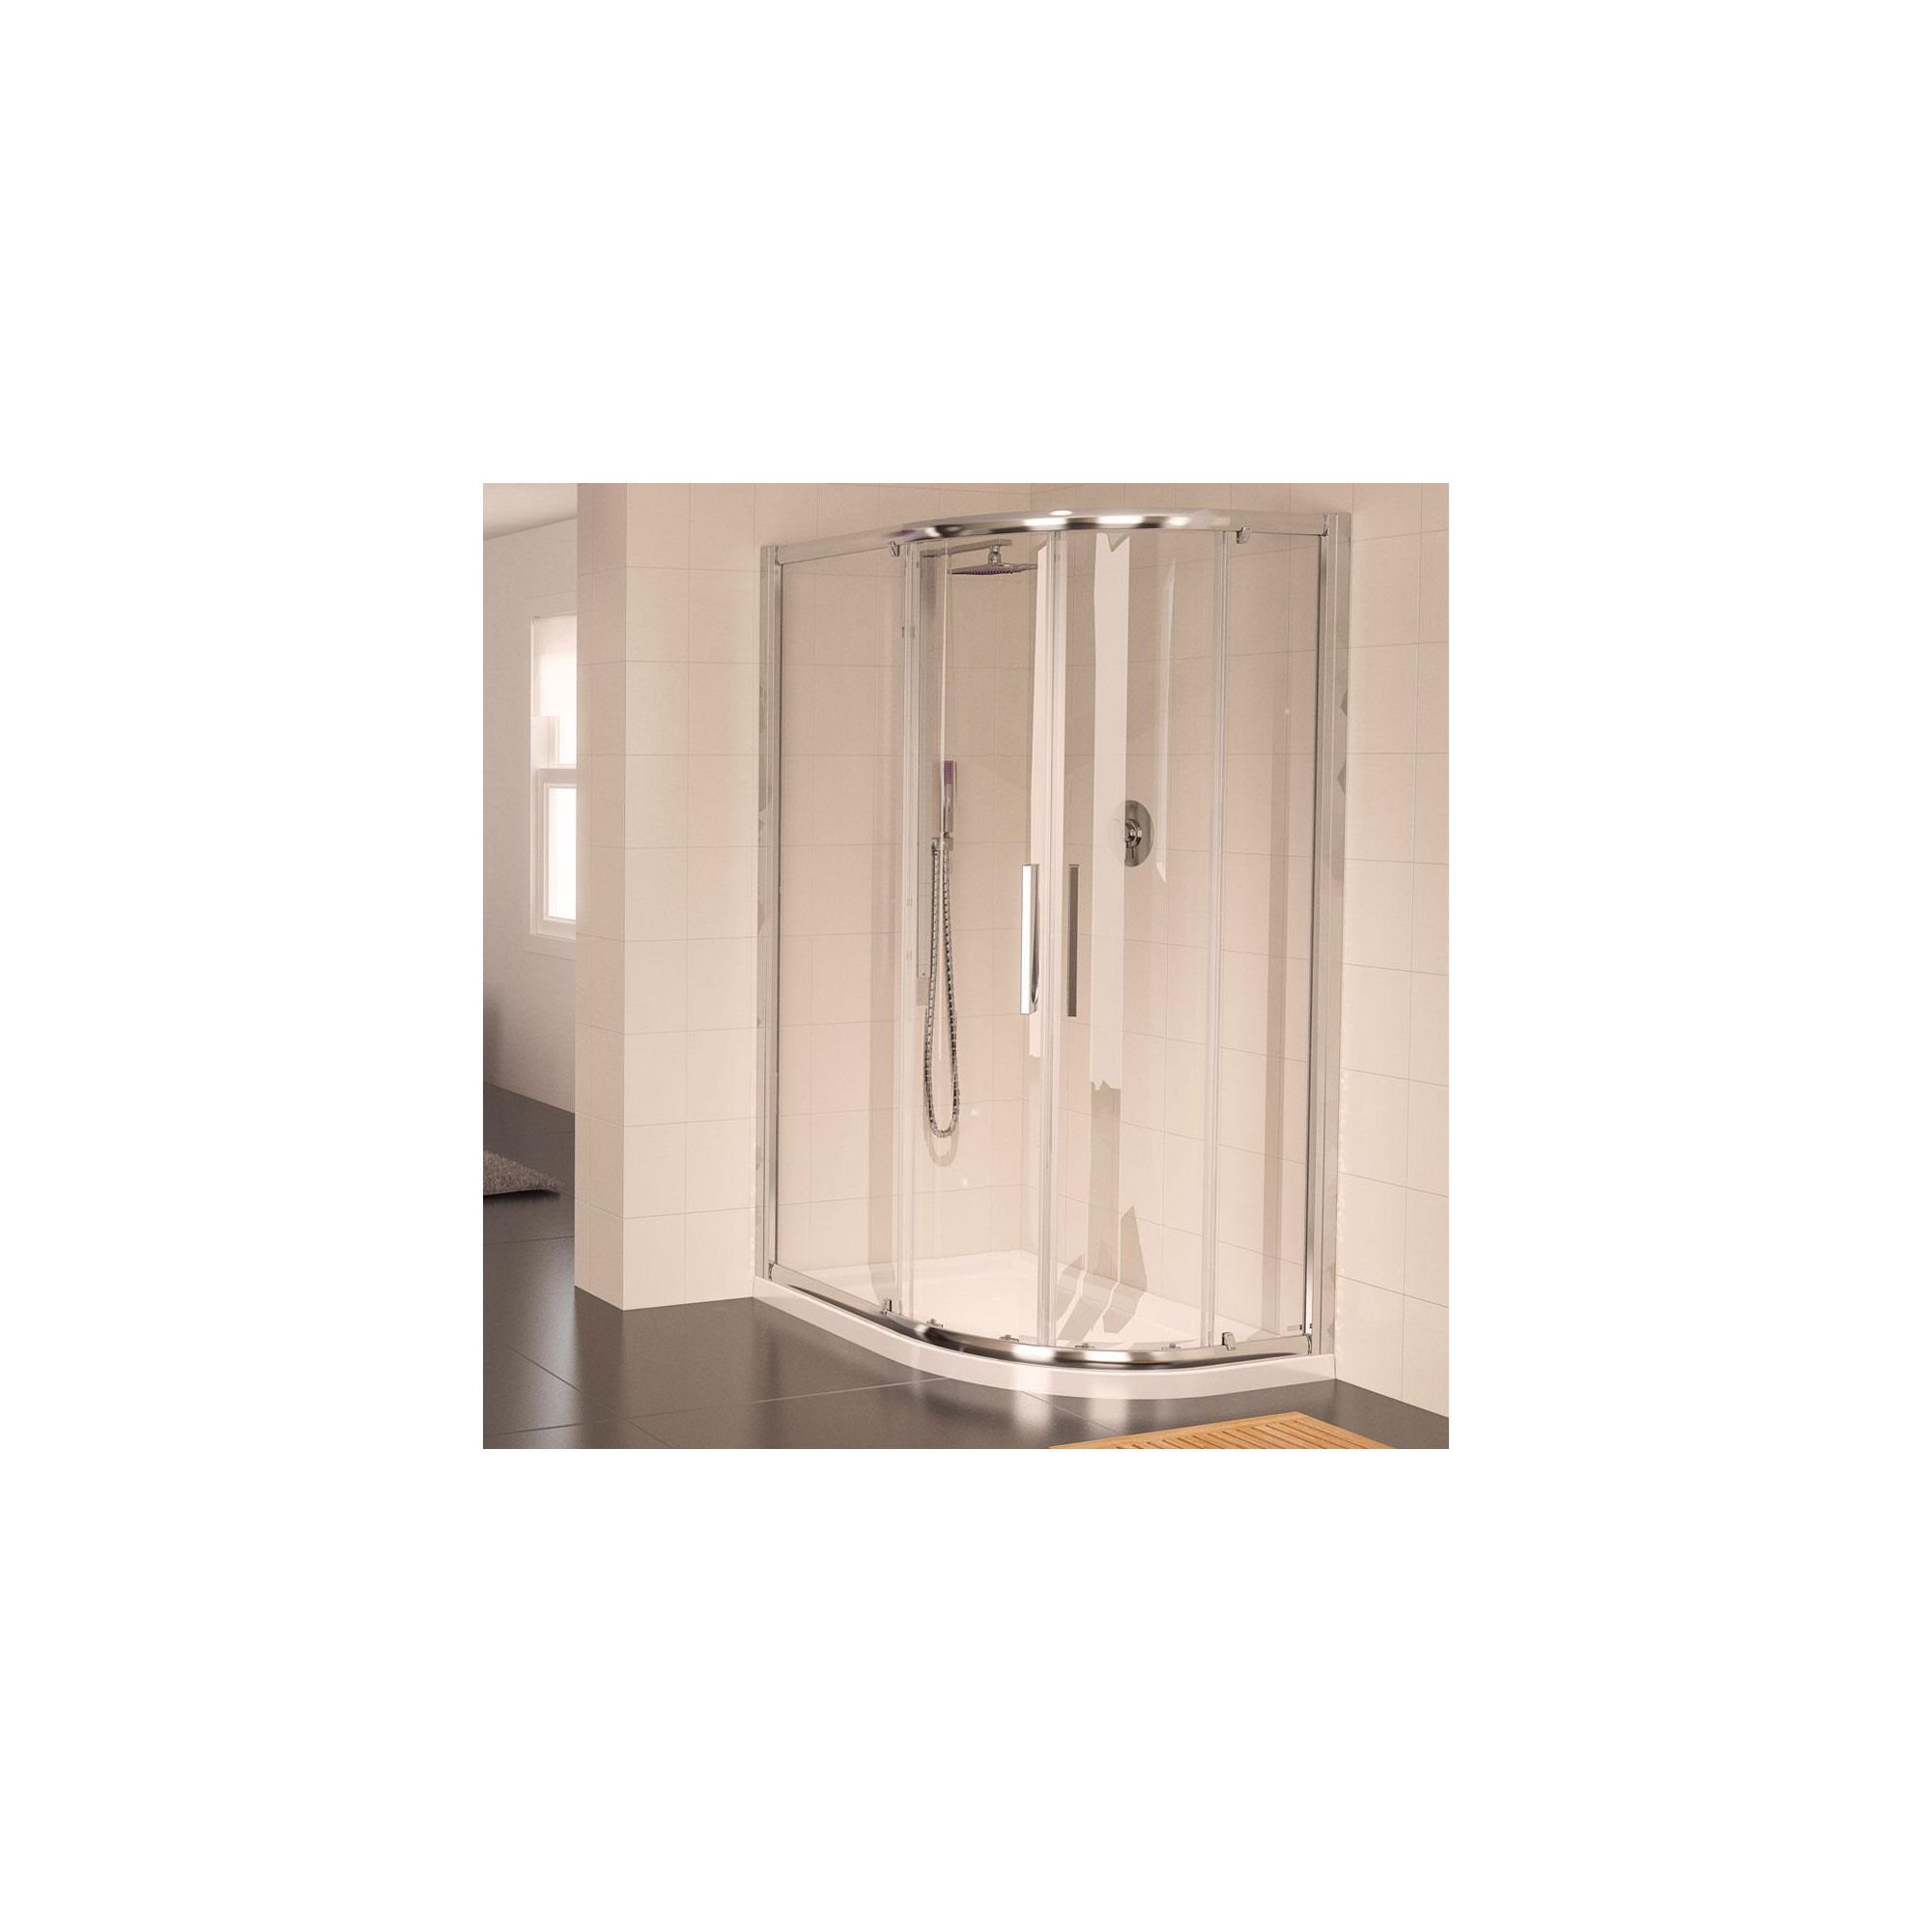 Aqualux AQUA8 Glide Offset Quadrant Shower Door, 1200mm x 900mm, Polished Silver Frame, 8mm Glass at Tesco Direct